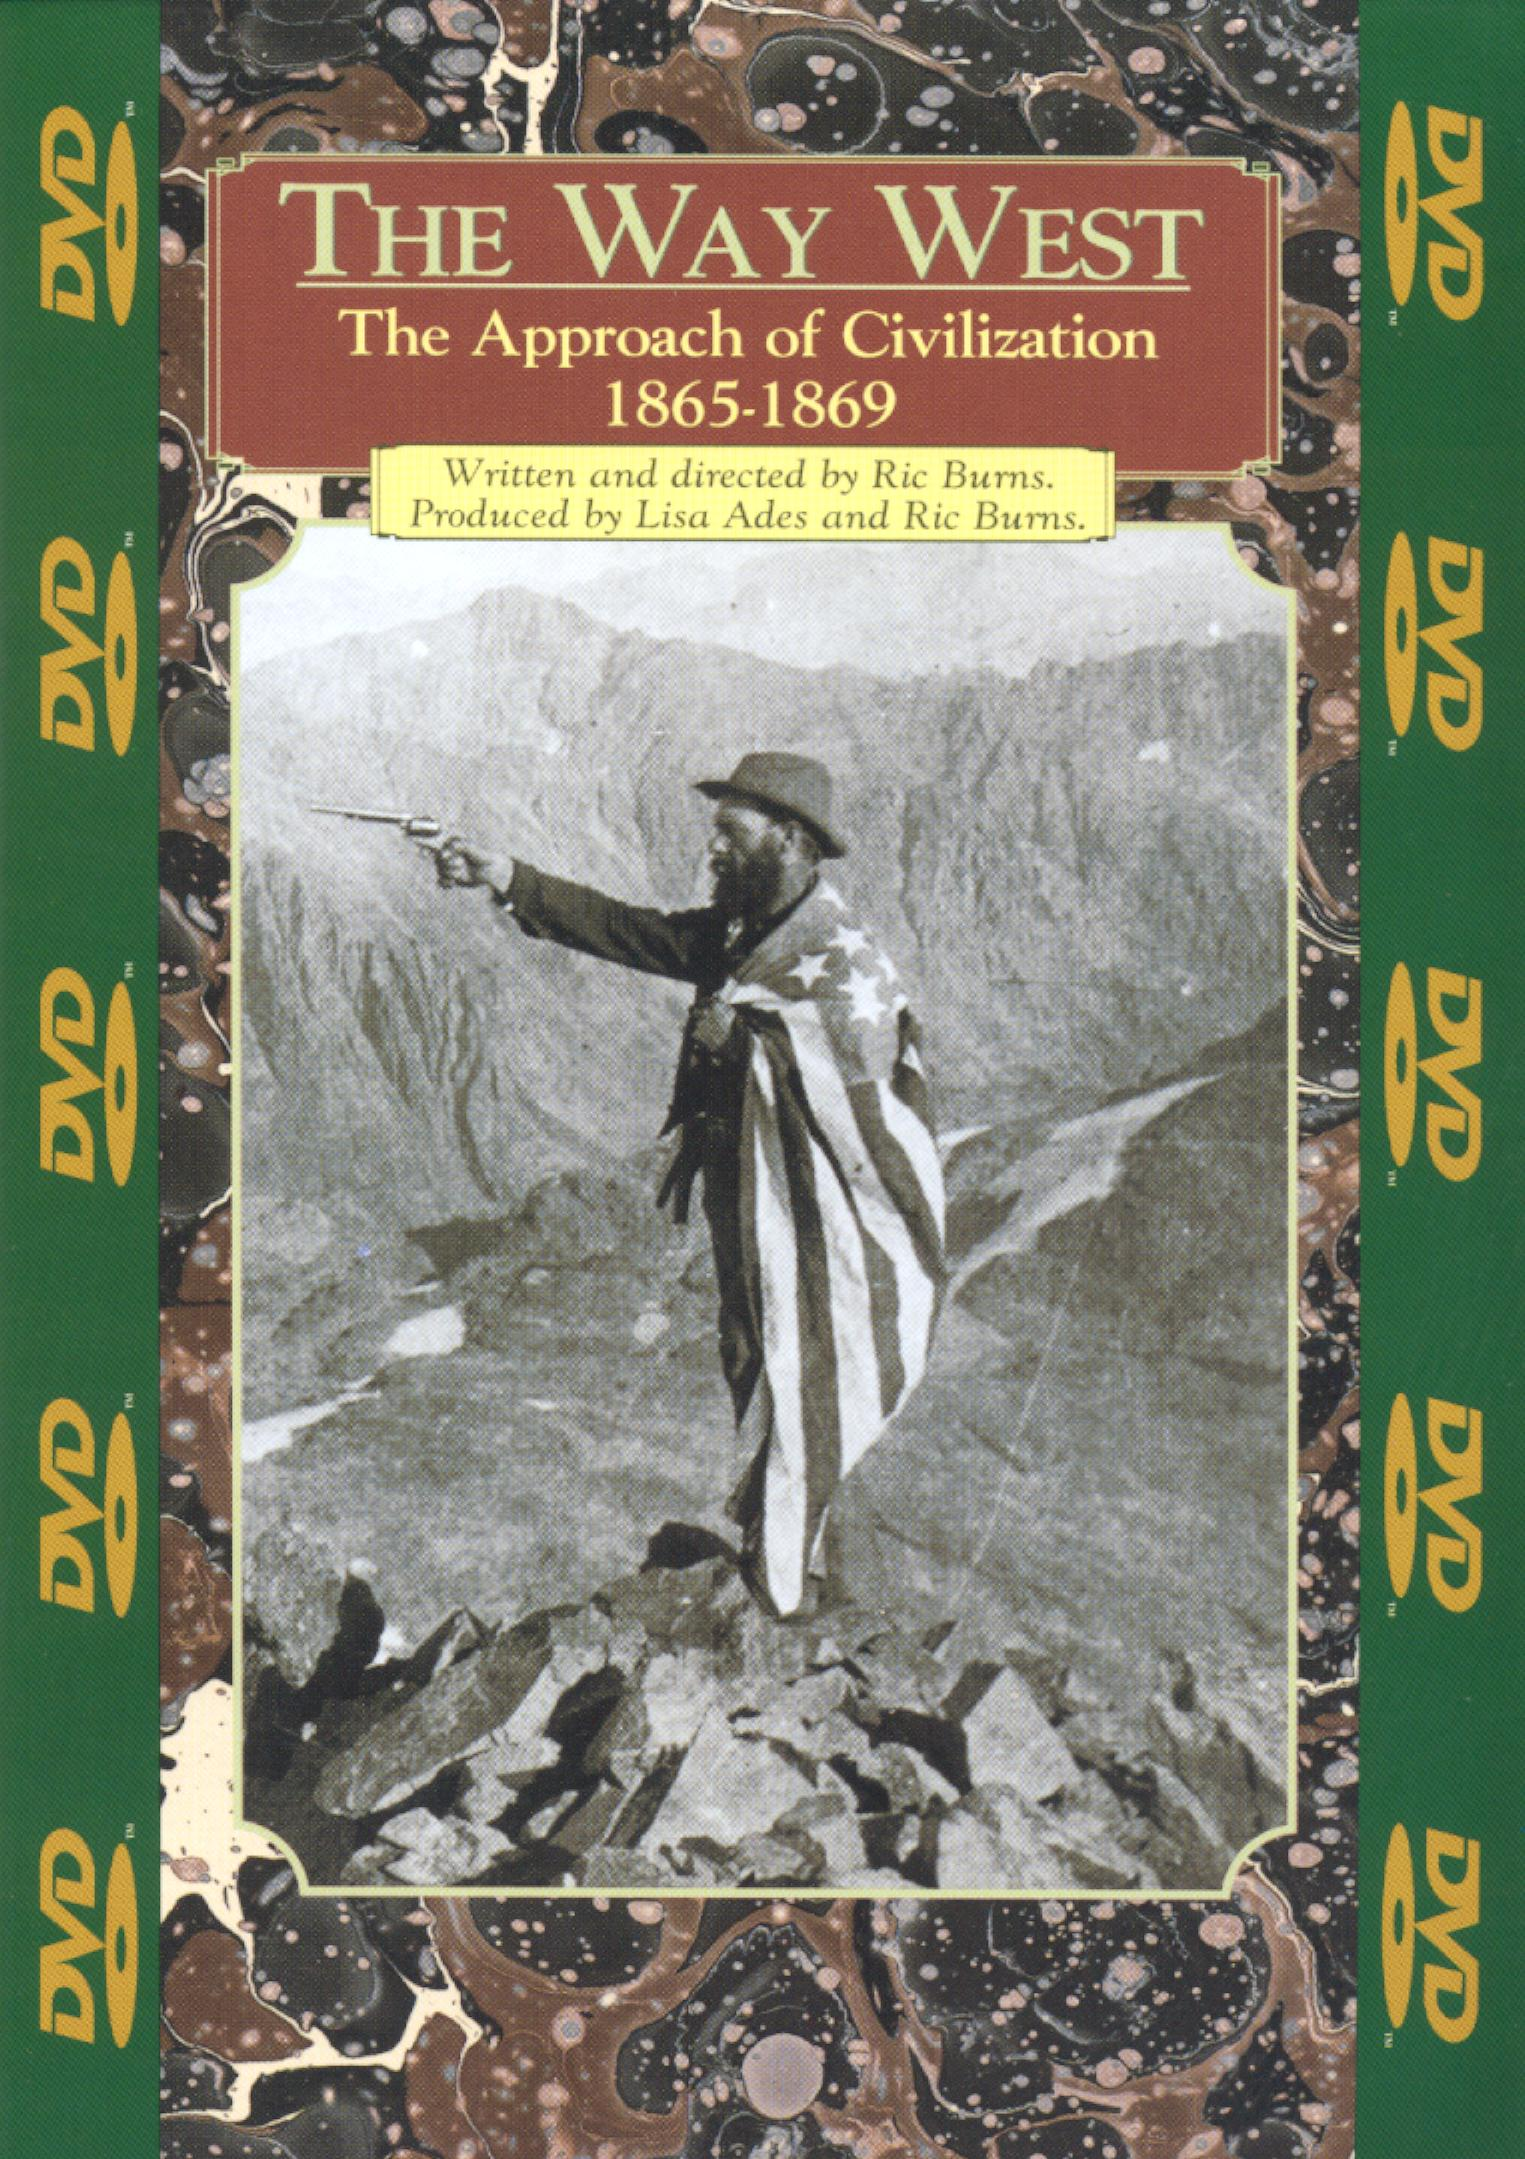 The Way West: The Approach of Civilization, 1865